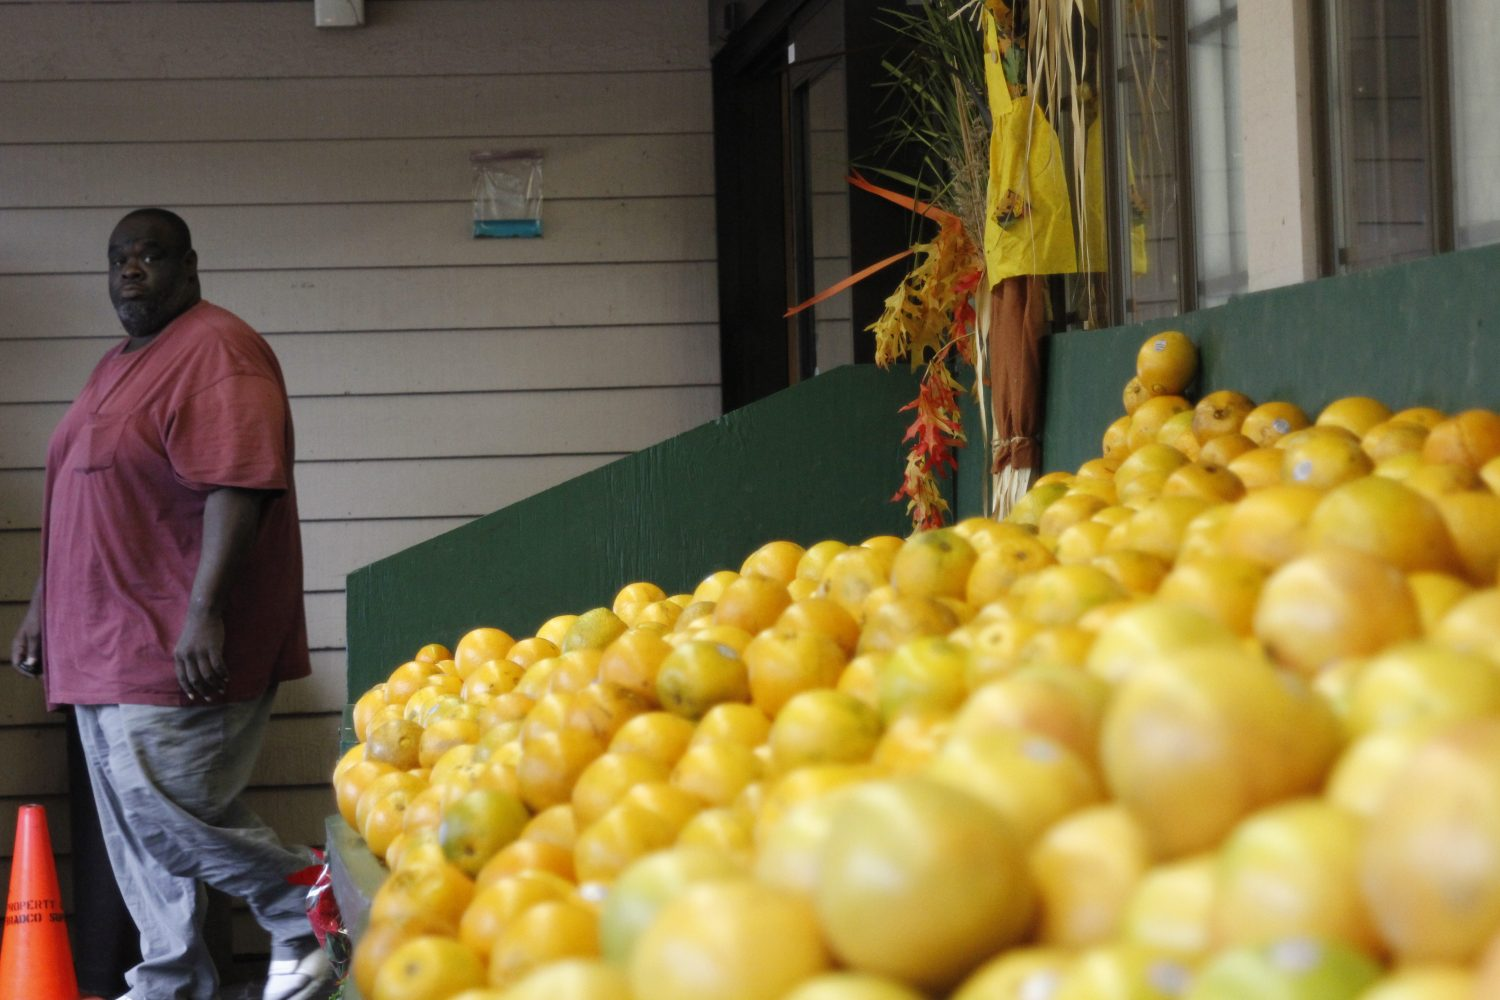 A Ward's patron takes a glance at some citrus as he leaves the store.